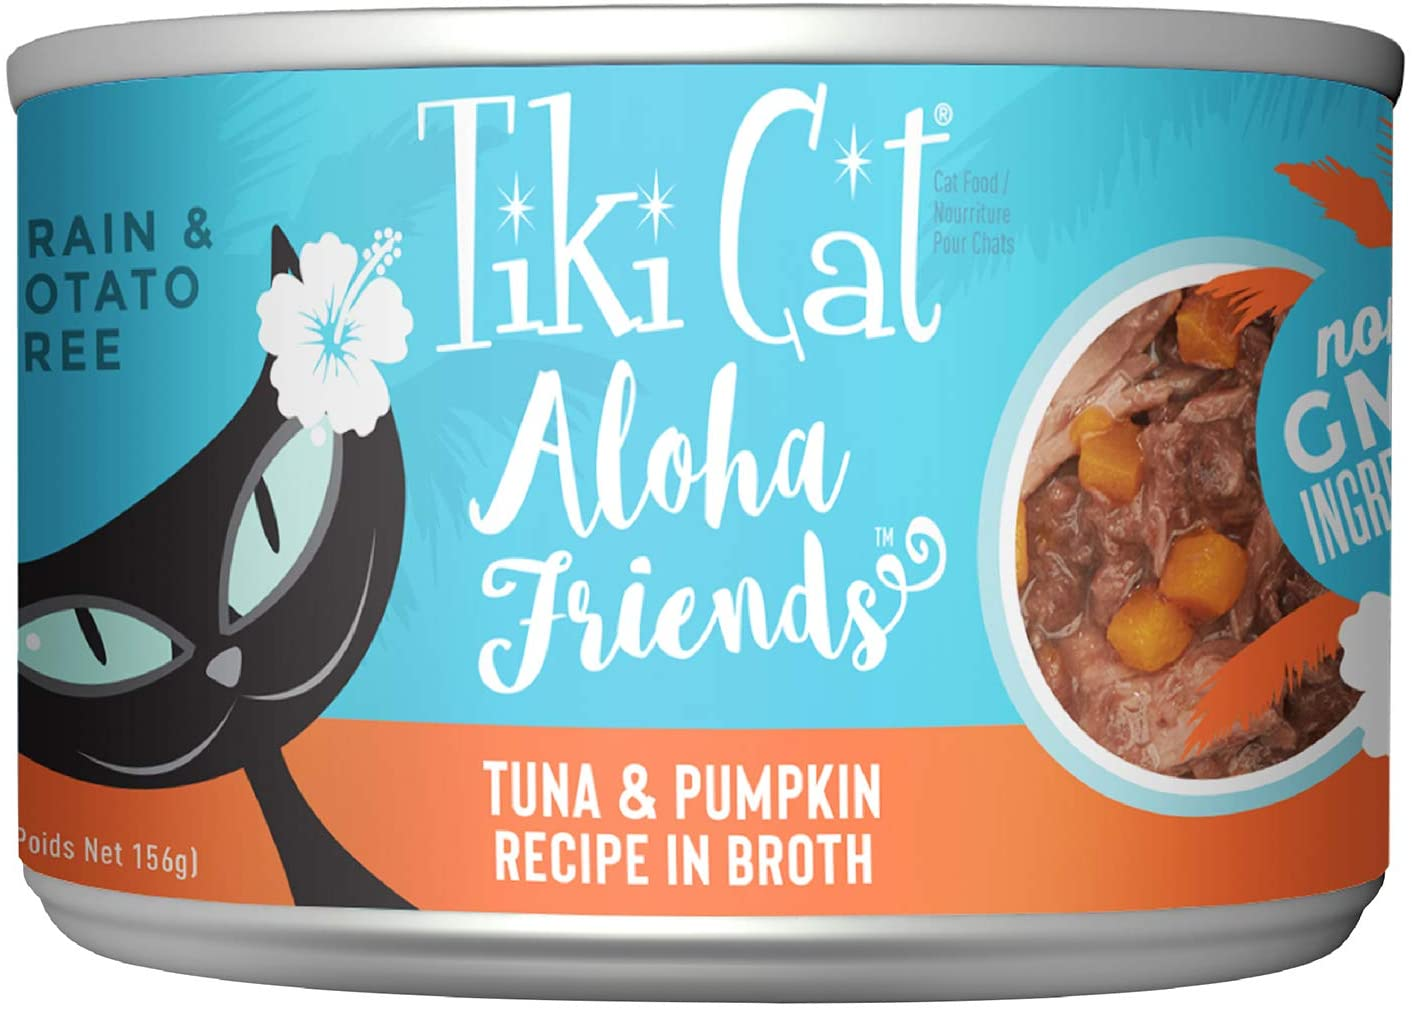 Tiki Pets Tiki Cat Aloha Friends Grain-Free, Low-Carbohydrate Wet Food with Flaked Tuna for Adult Cats & Kittens, 5.5oz, 8 cans, Tuna & Pumpkin